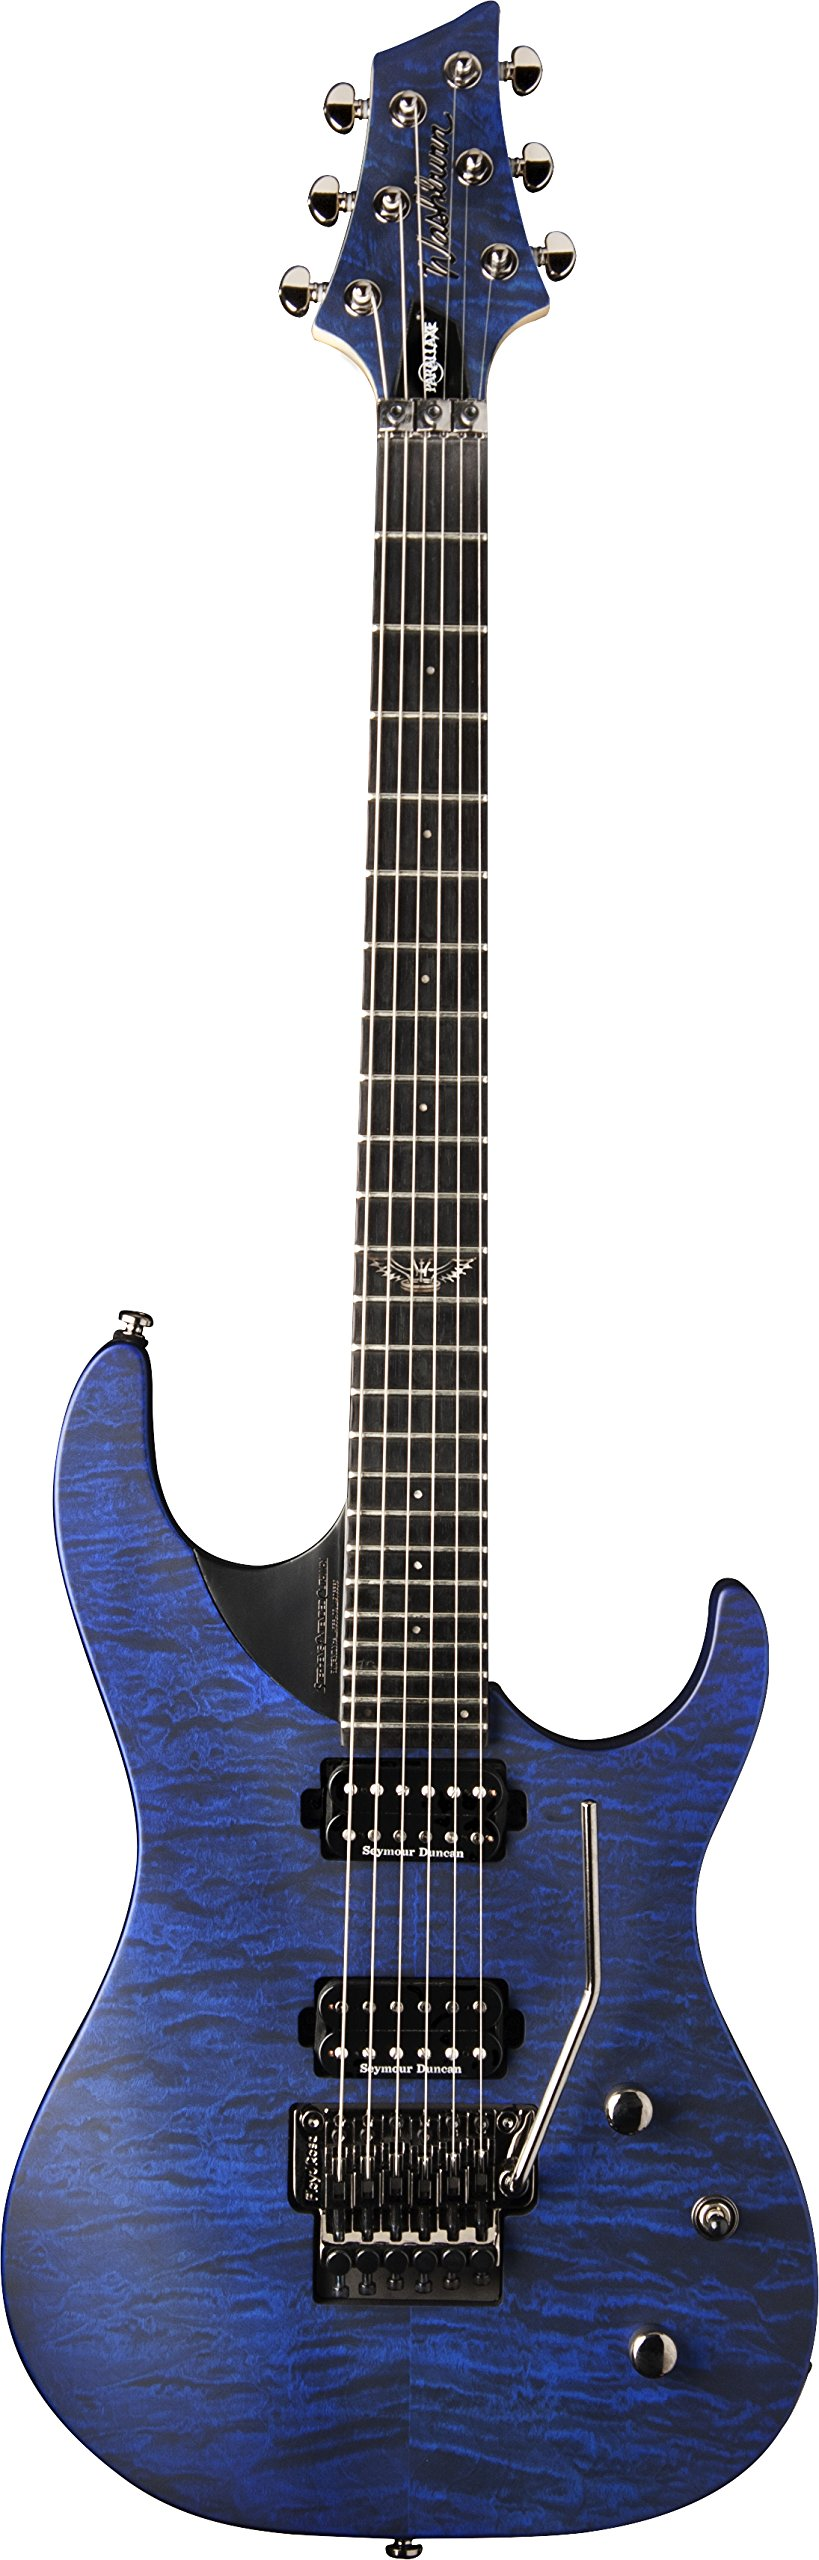 Cheap Washburn PXM10FRQTBLM Parallaxe PXM Series Solid-Body Electric Guitar Quilt Trans Blue Burst Finish Black Friday & Cyber Monday 2019